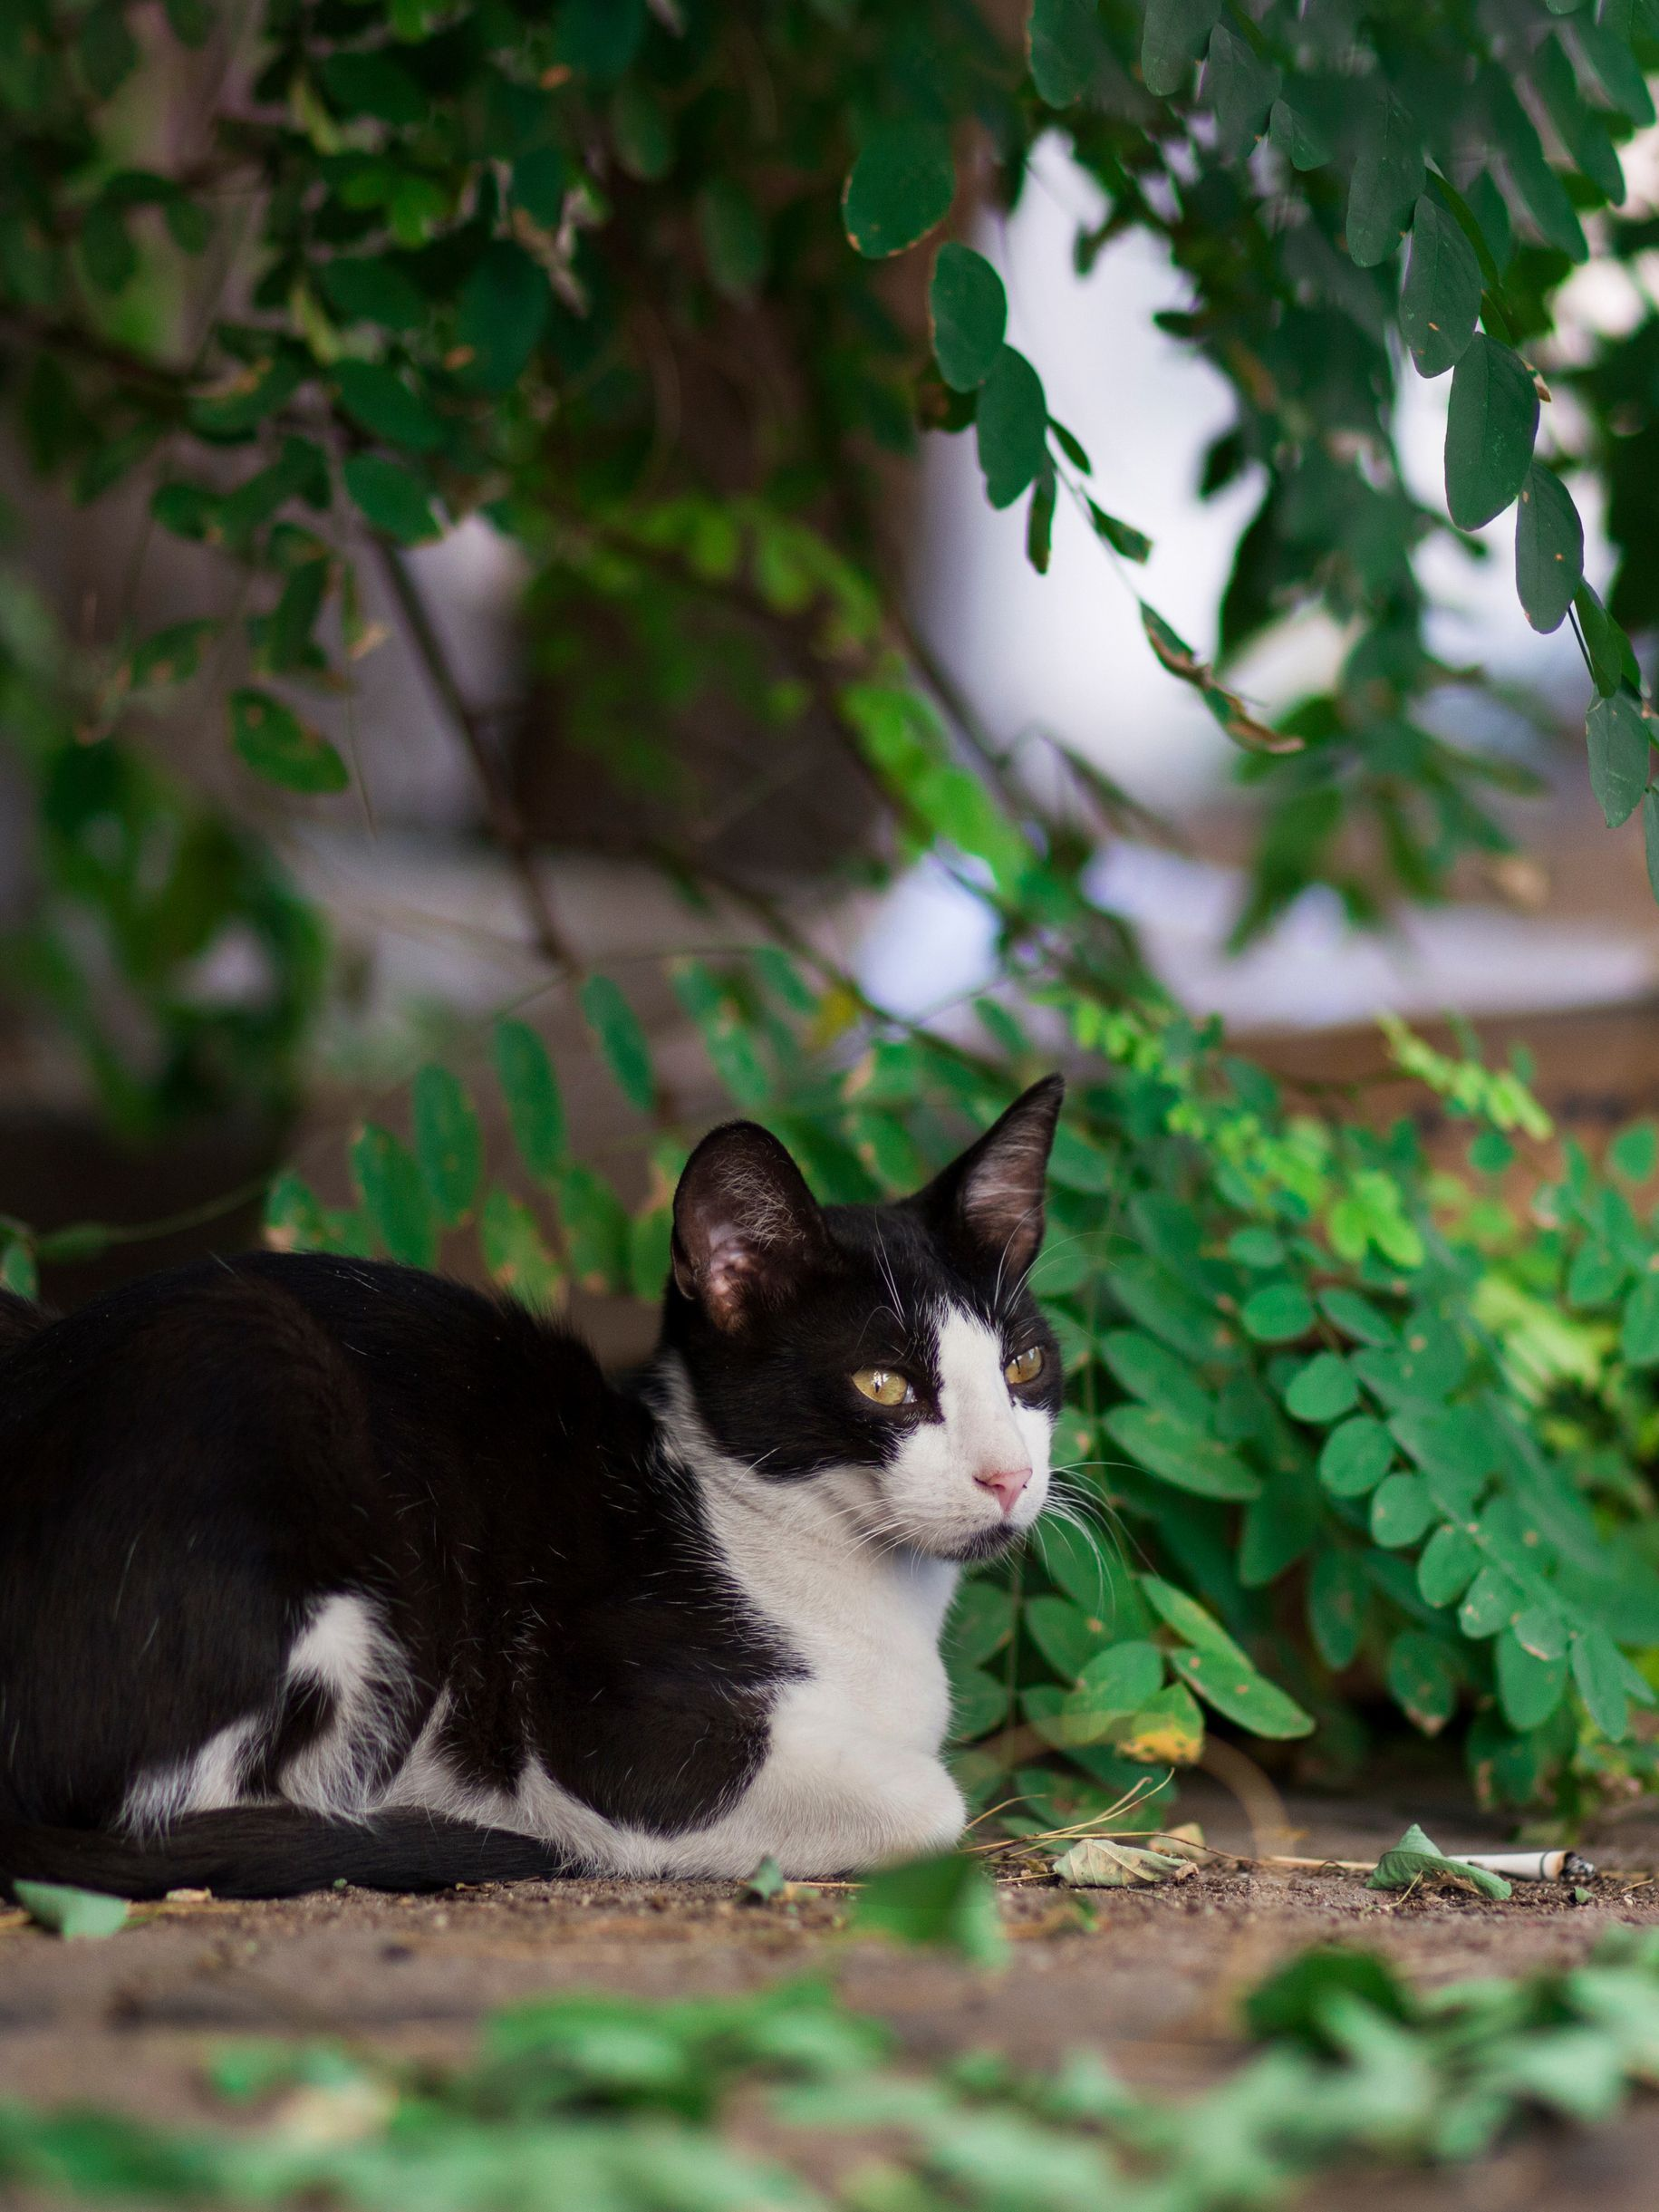 30 Pics Stray Cat Photos December New Collection Of Cats Photos In Istanbul Part 2 Gatos Animales